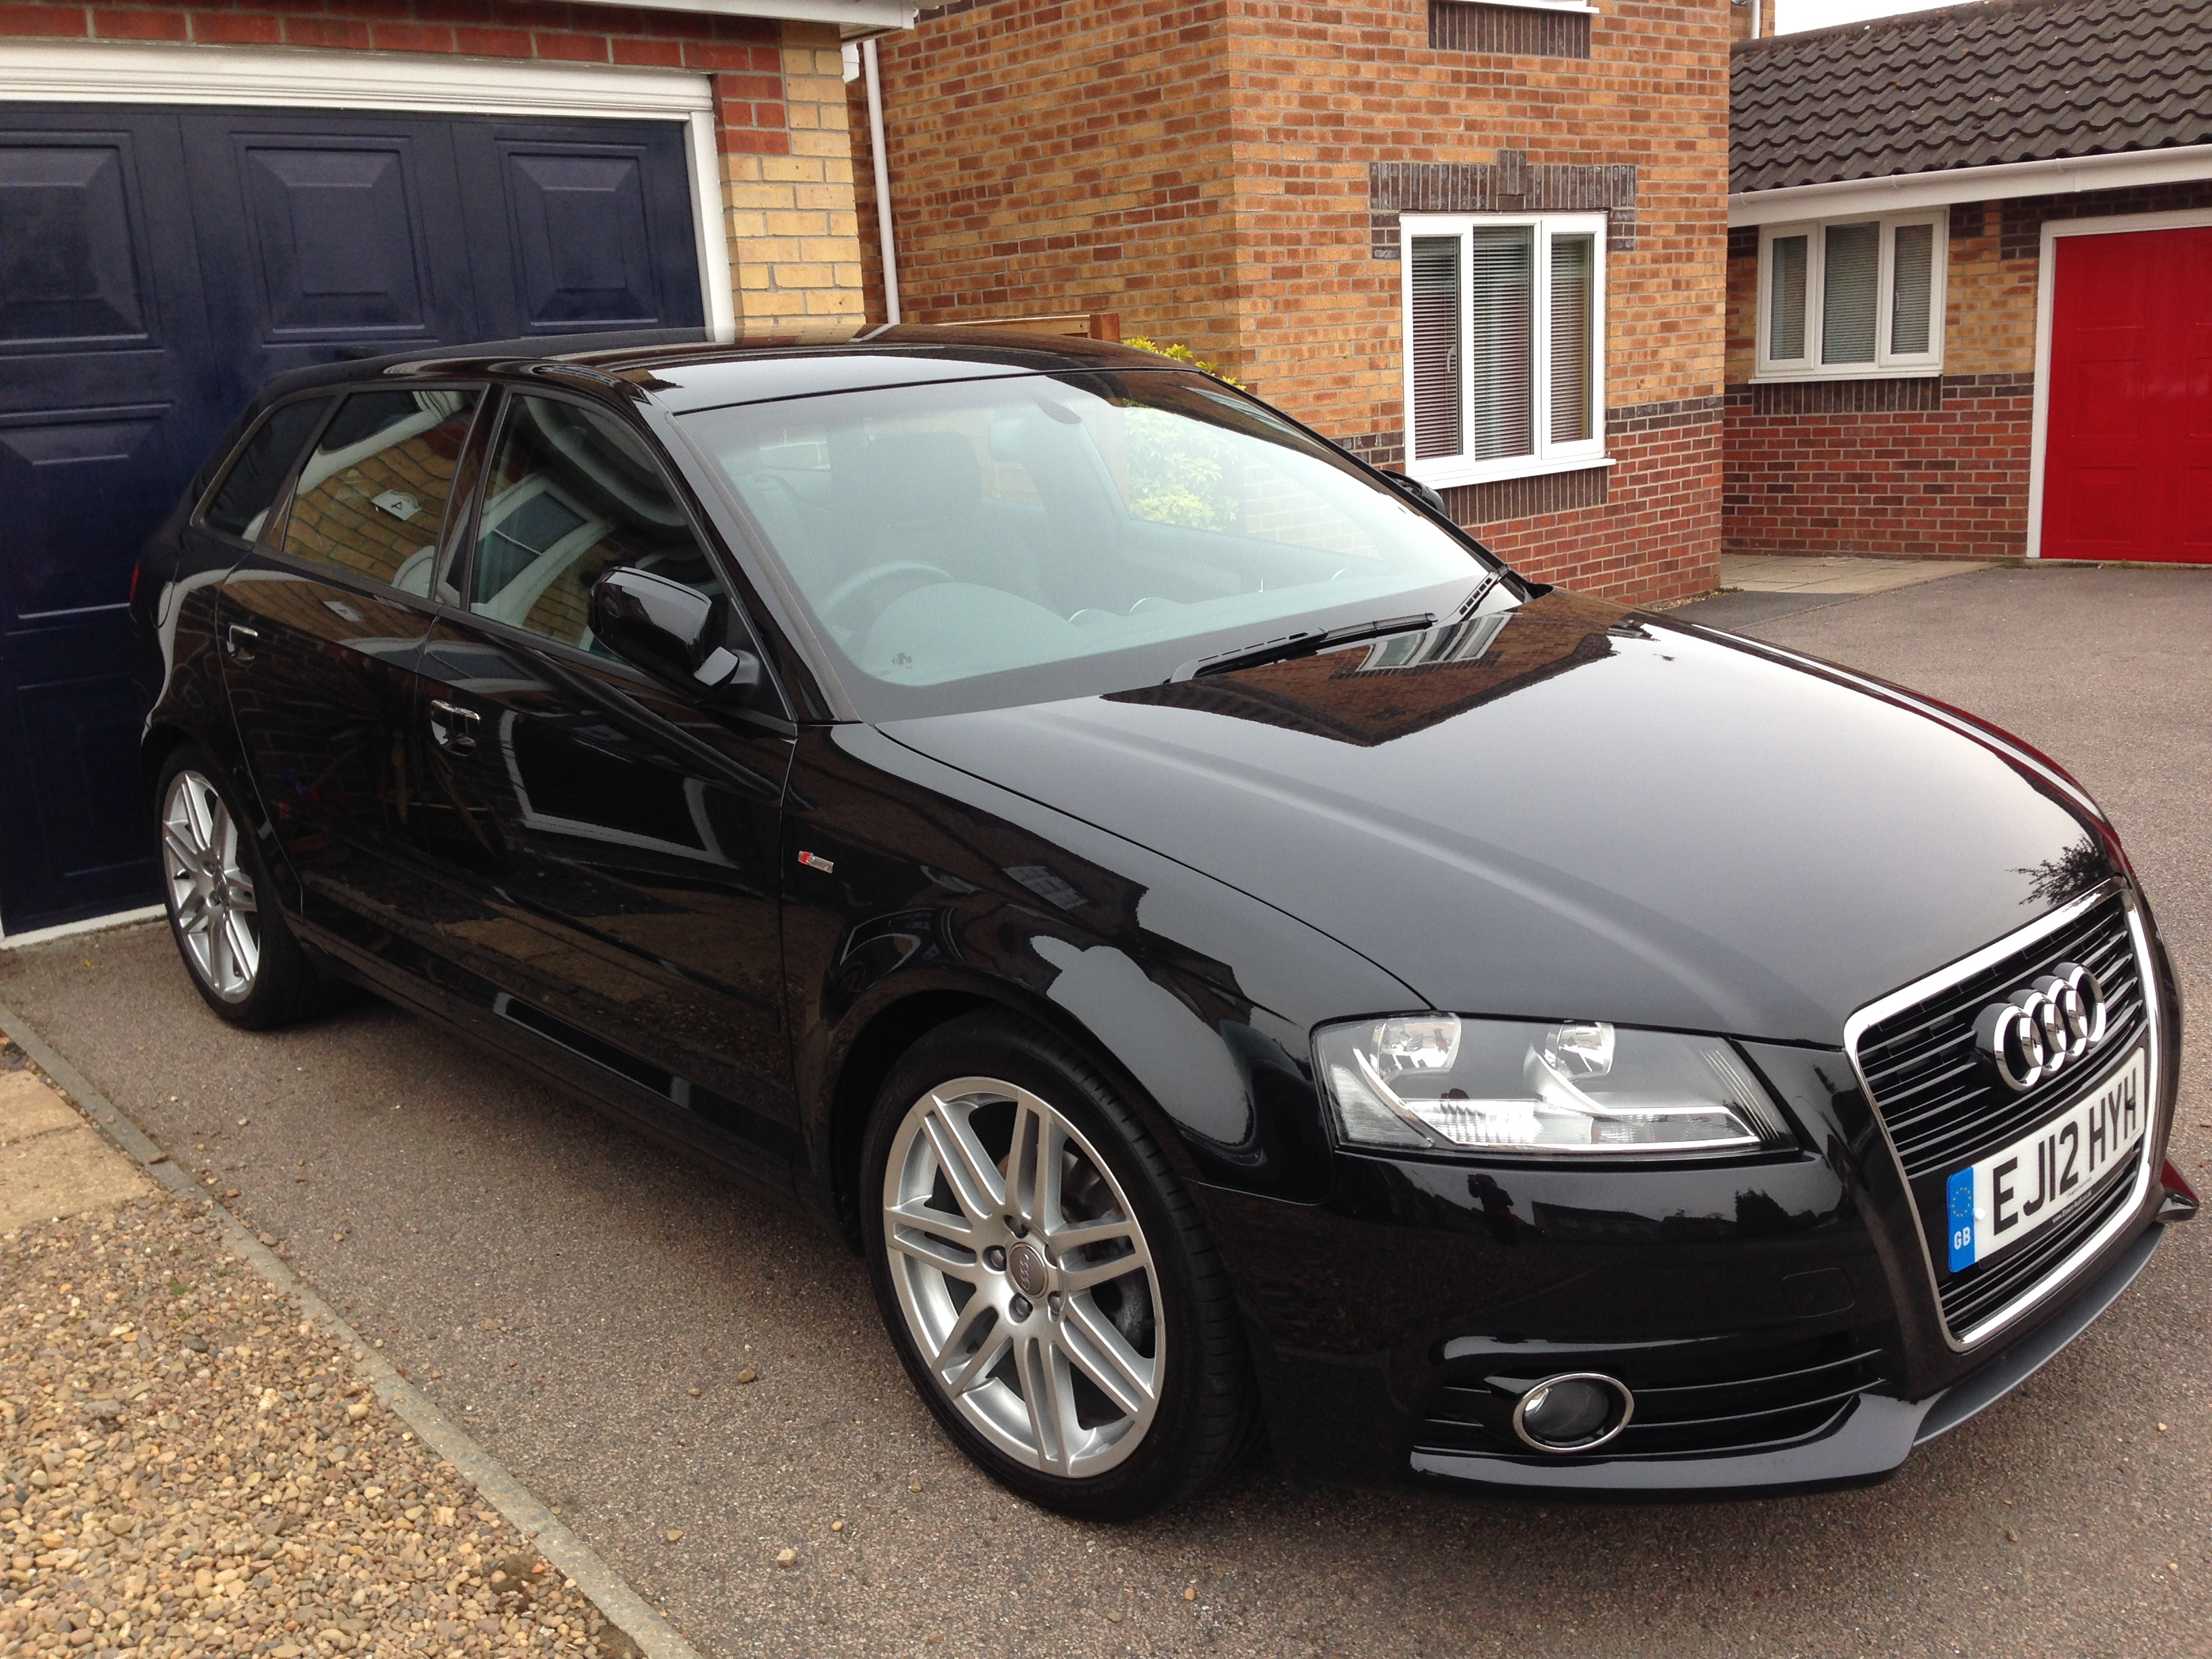 audi a3 2 0 tdi 170 quattro s line remap. Black Bedroom Furniture Sets. Home Design Ideas